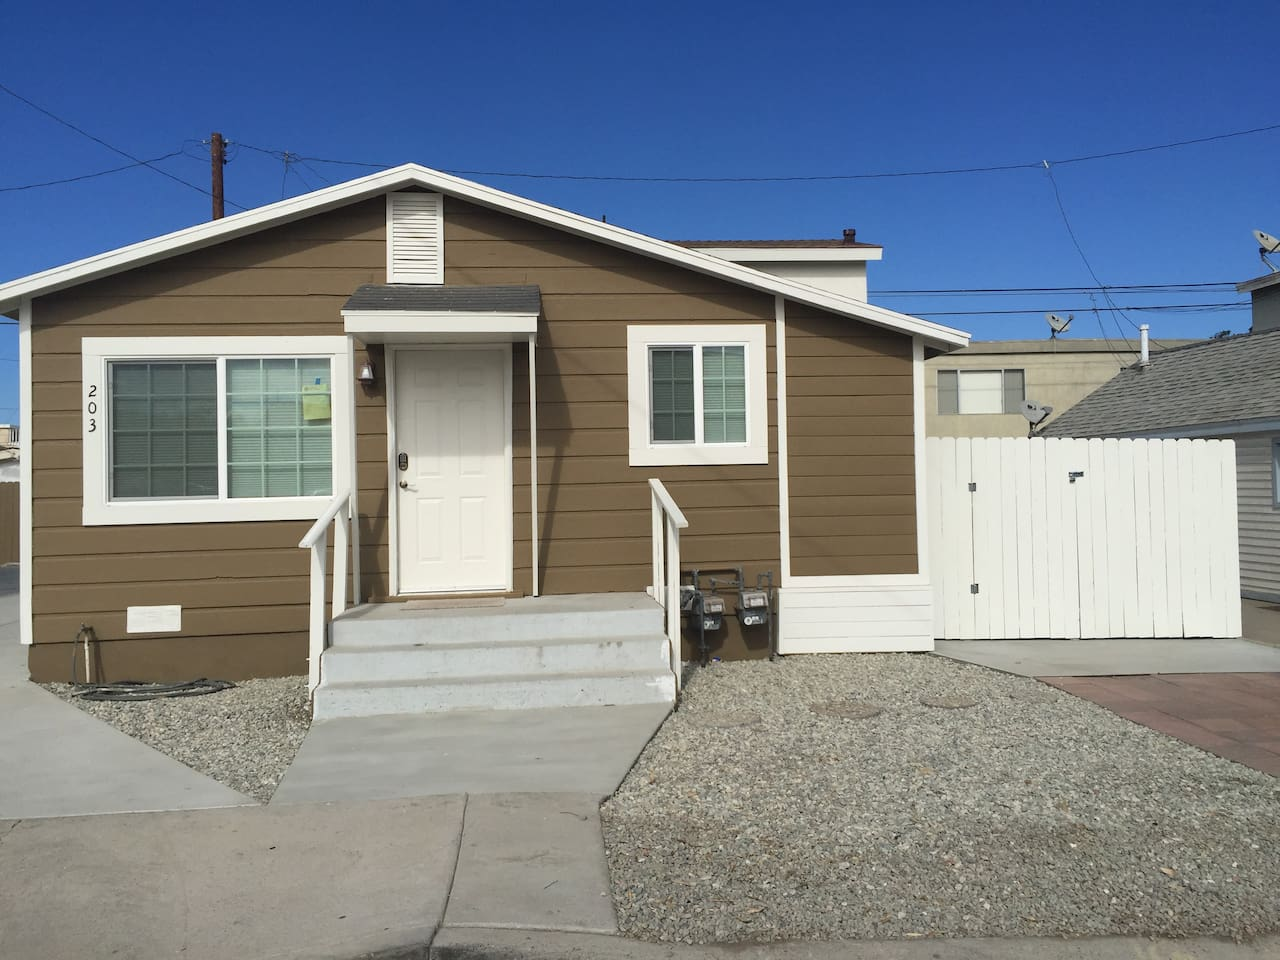 Front of Cozy Silver Strand Beach House with 2 parking spaces in front